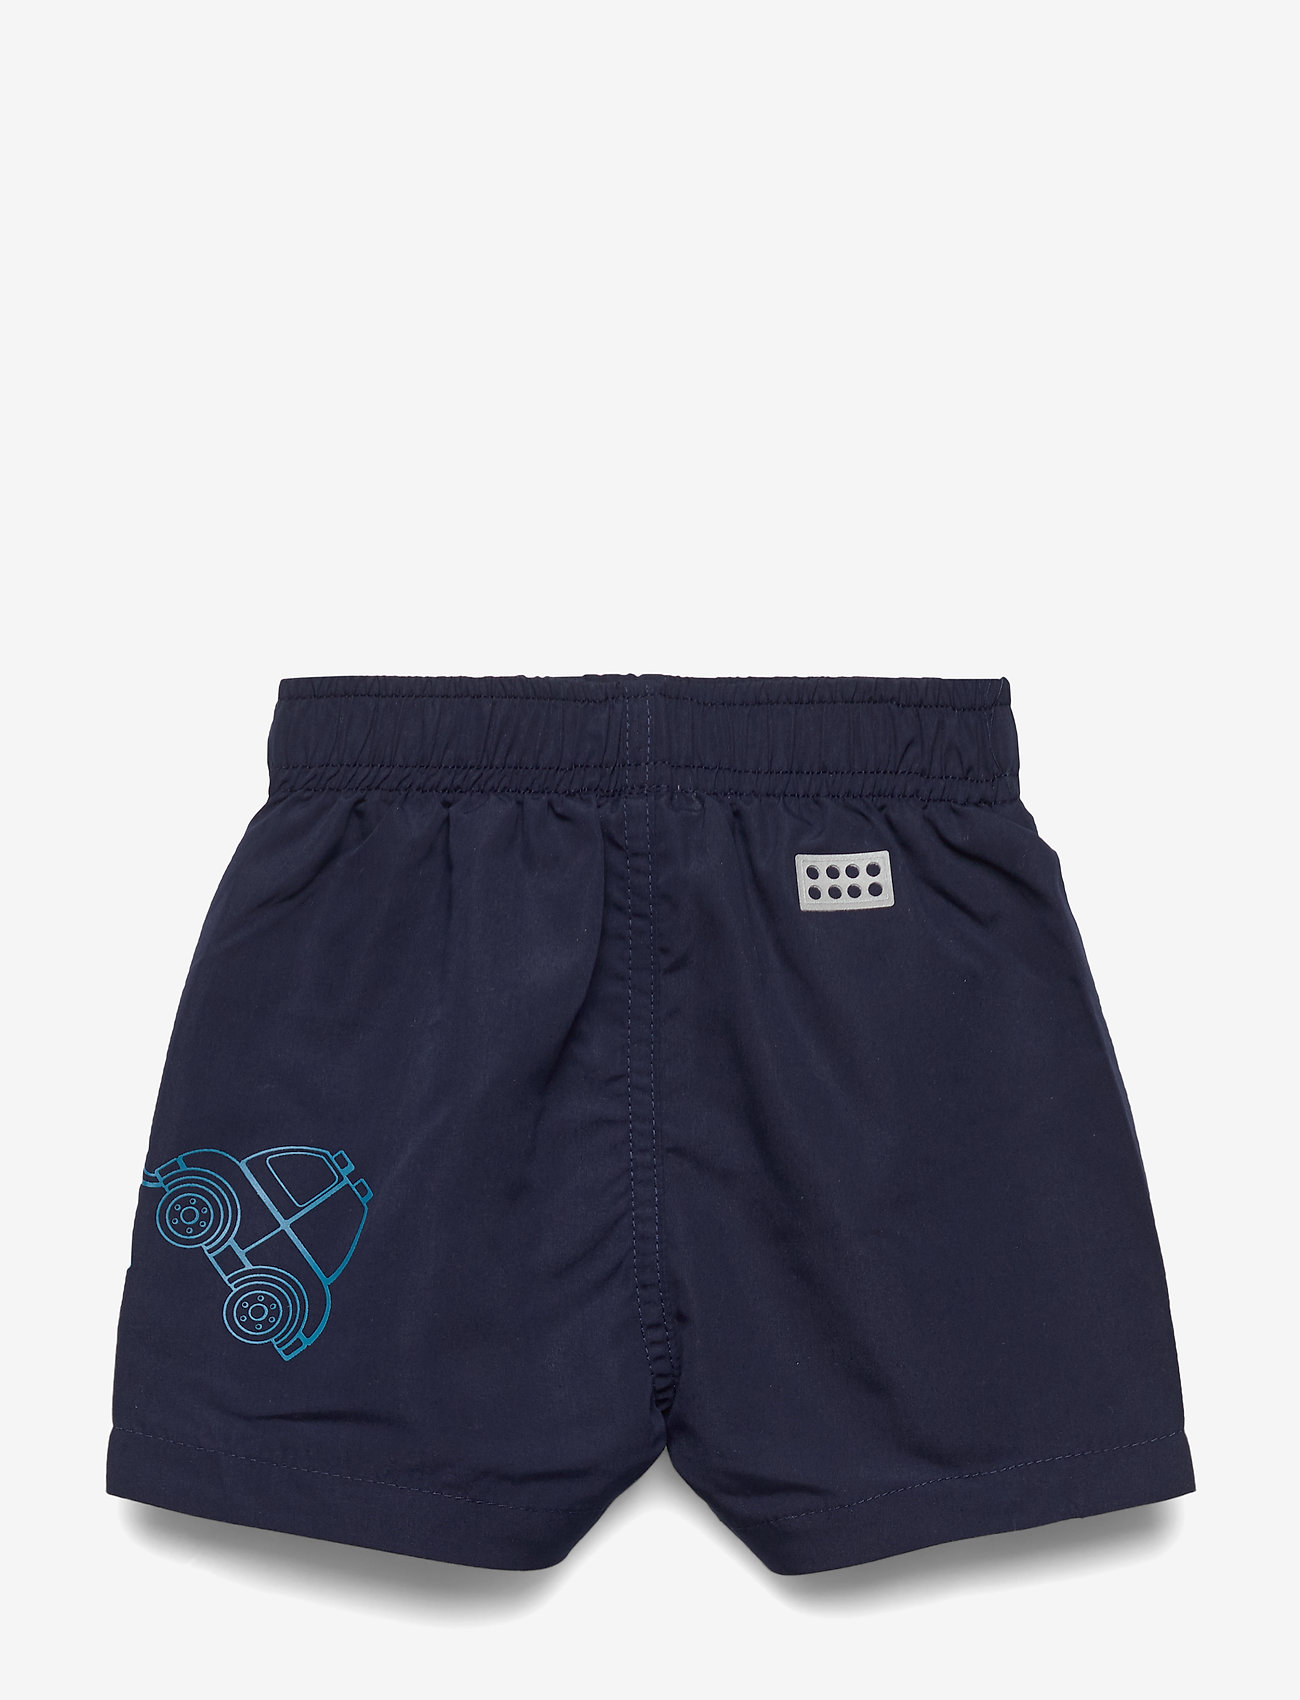 Lego wear - LWPOUL 351 - SWIM SHORTS - badebukser - dark navy - 1